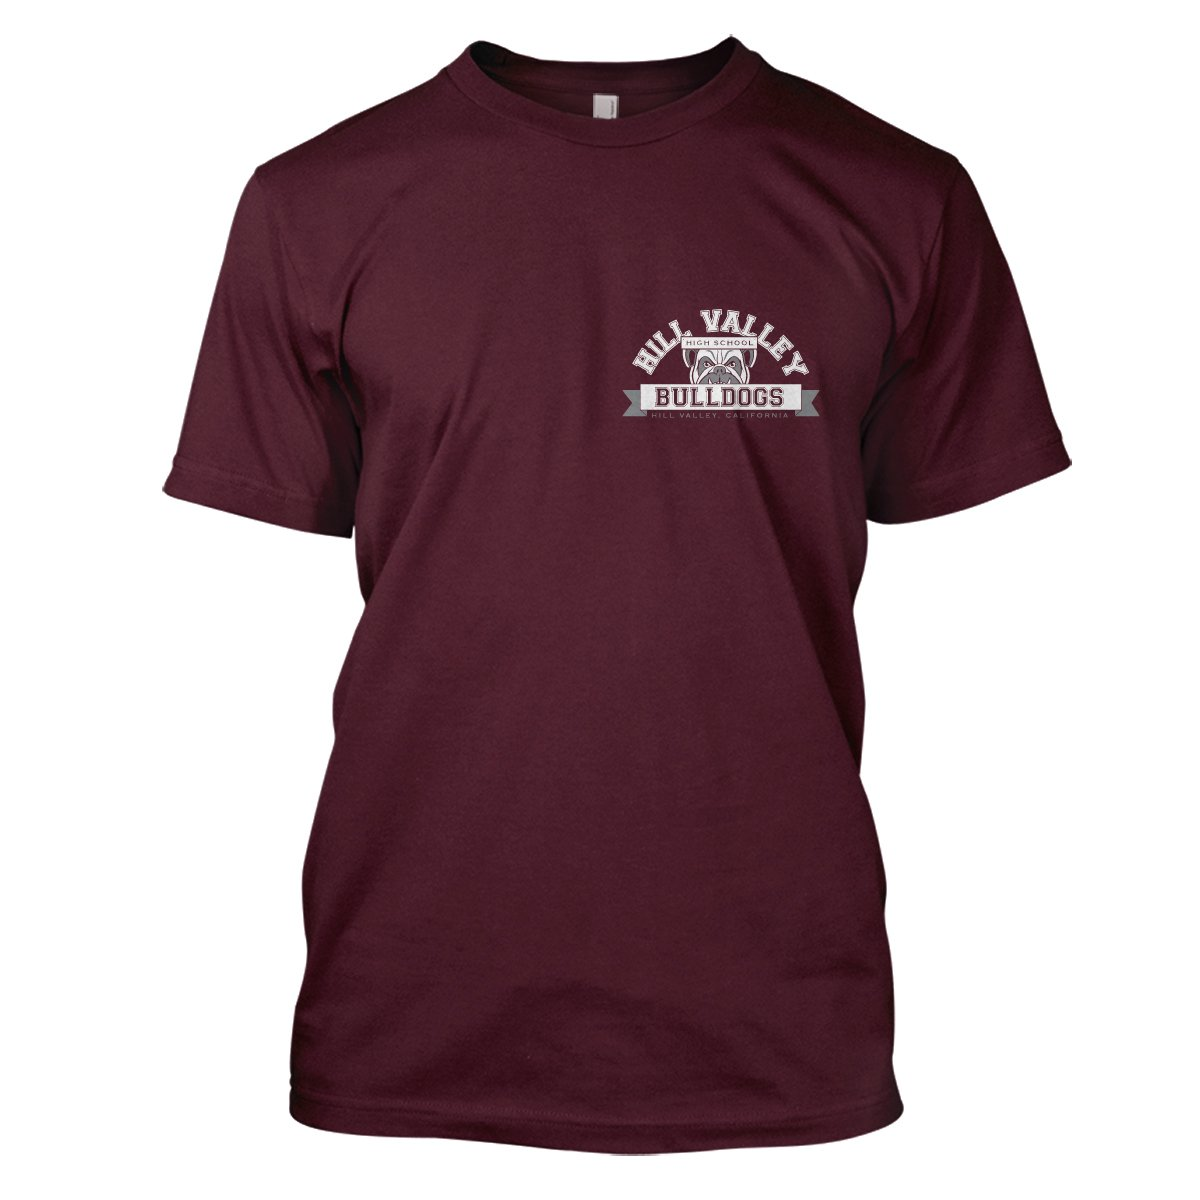 Back To The Future: Hill Valley Bulldogs Mens Movie T-Shirt Large Maroon